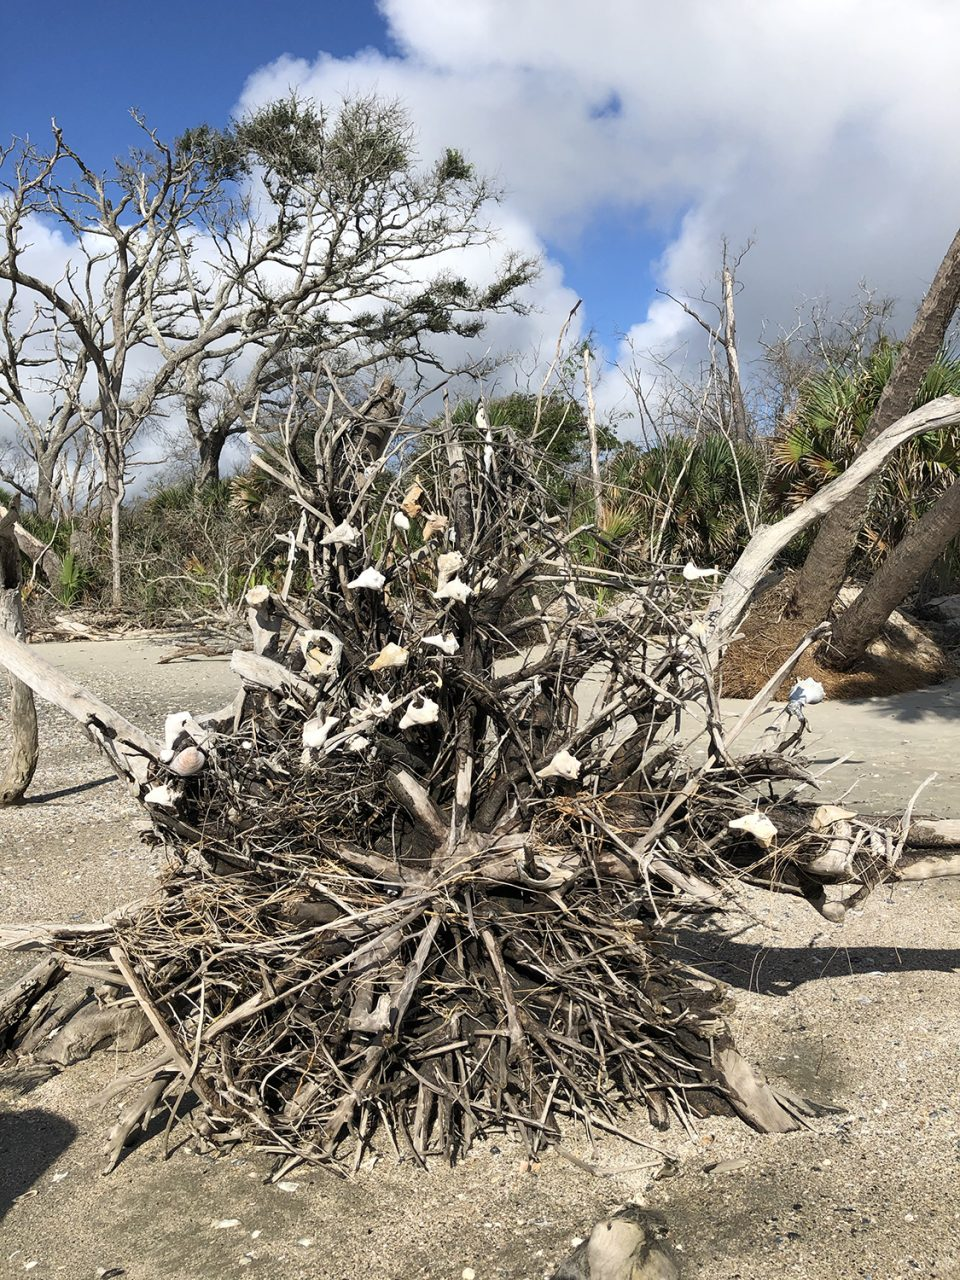 Uprooted tree with shells in the root bed on Driftwood Beach at Pocknoy Island